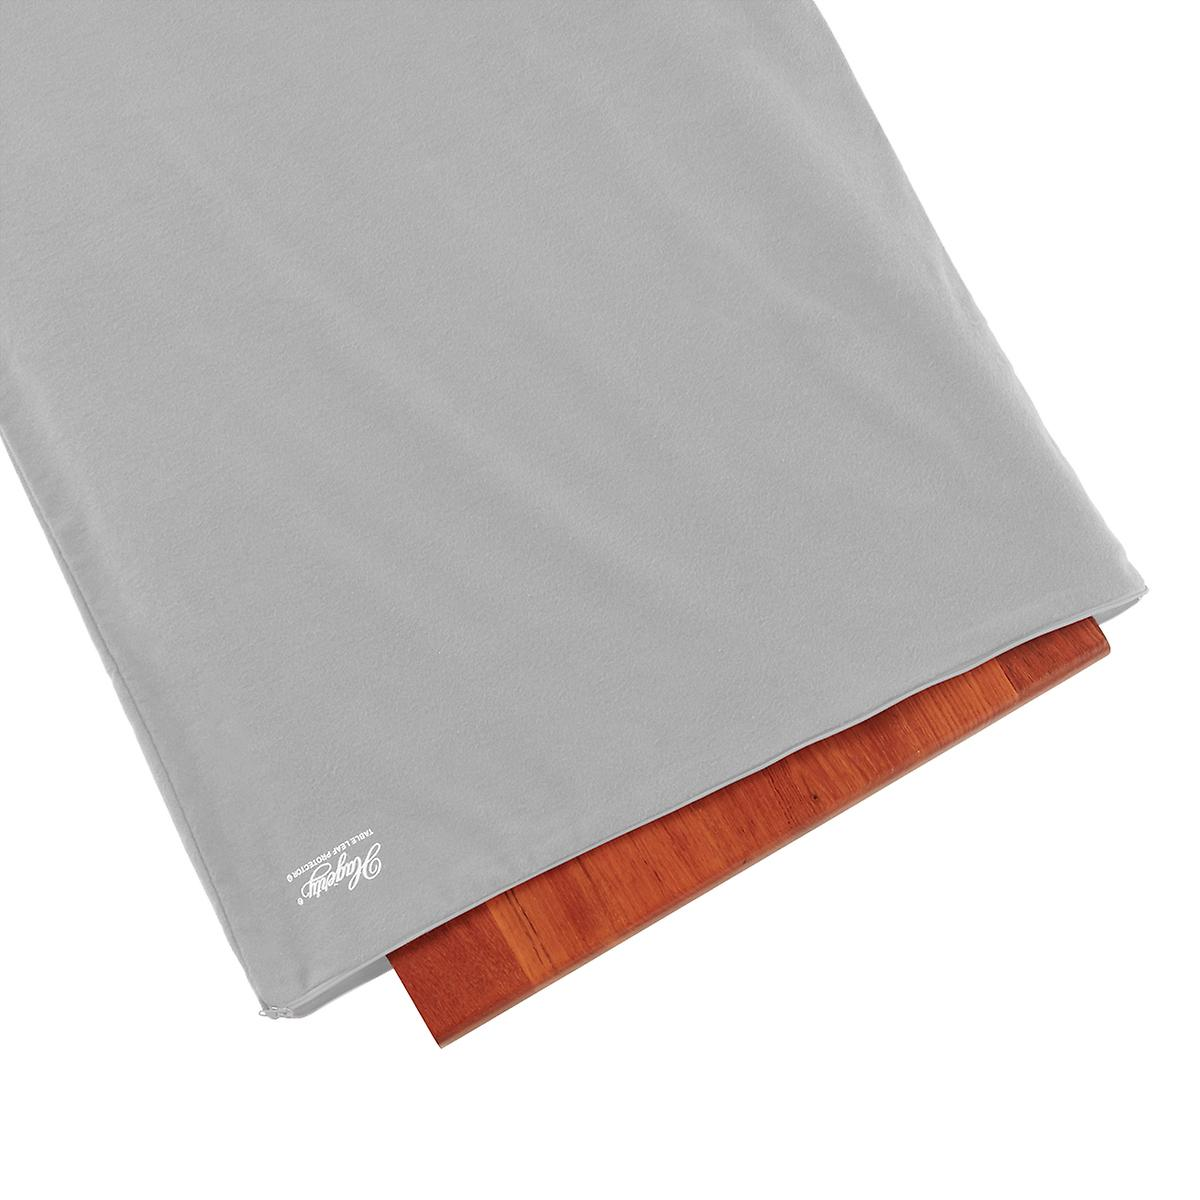 Hagerty Table Leaf Storage Bag The